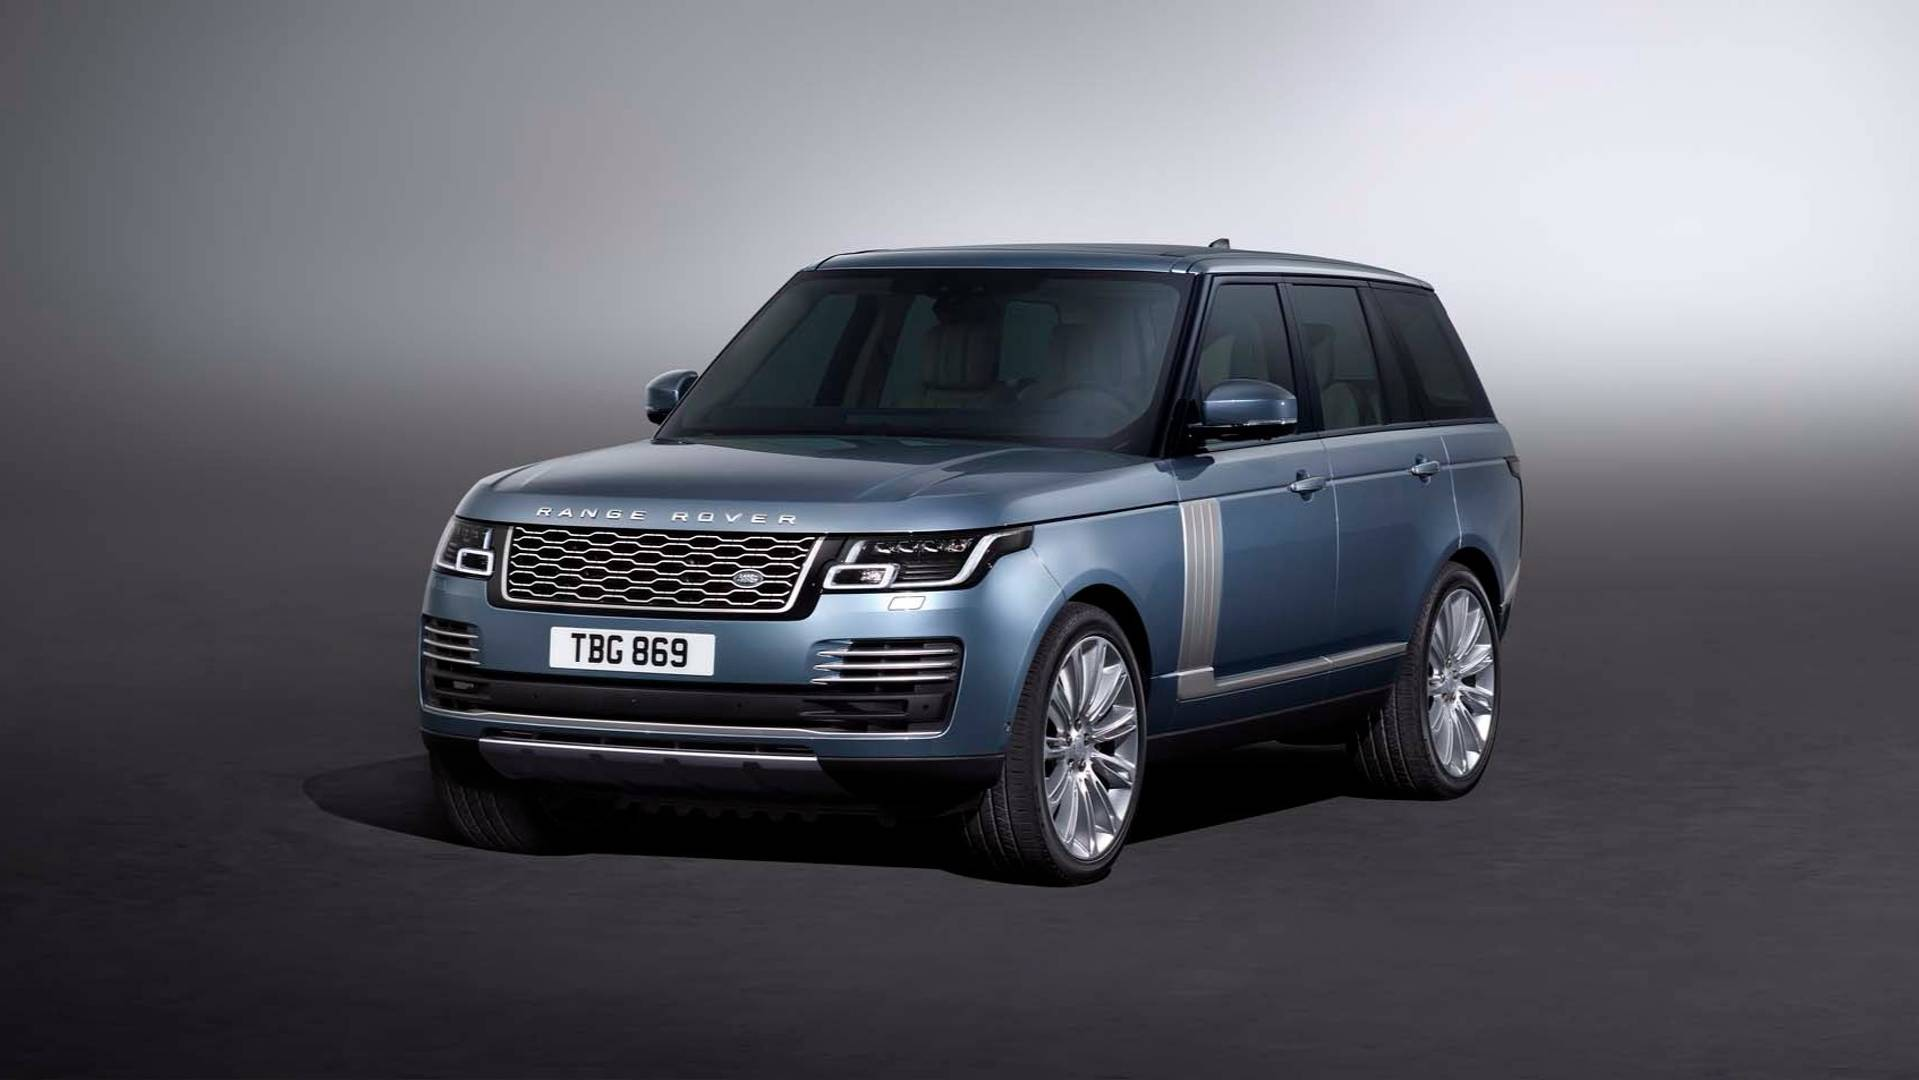 2018 range rover facelift officially revealed p400e phev added to the lineup autoevolution. Black Bedroom Furniture Sets. Home Design Ideas